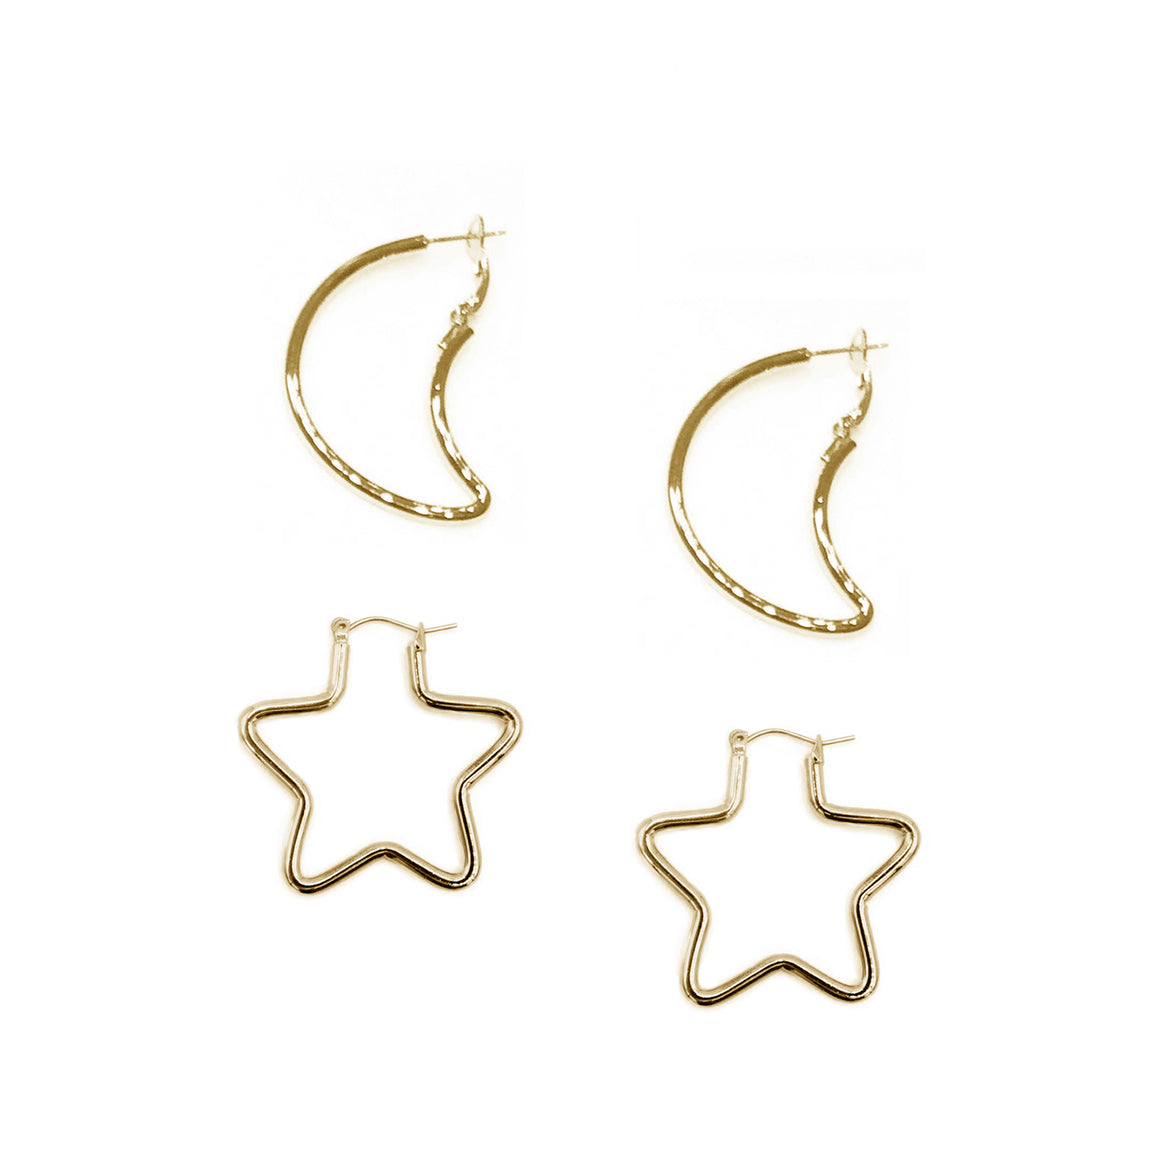 Small Star and Moon Earring Set, Bundle, Tuleste, Tuleste